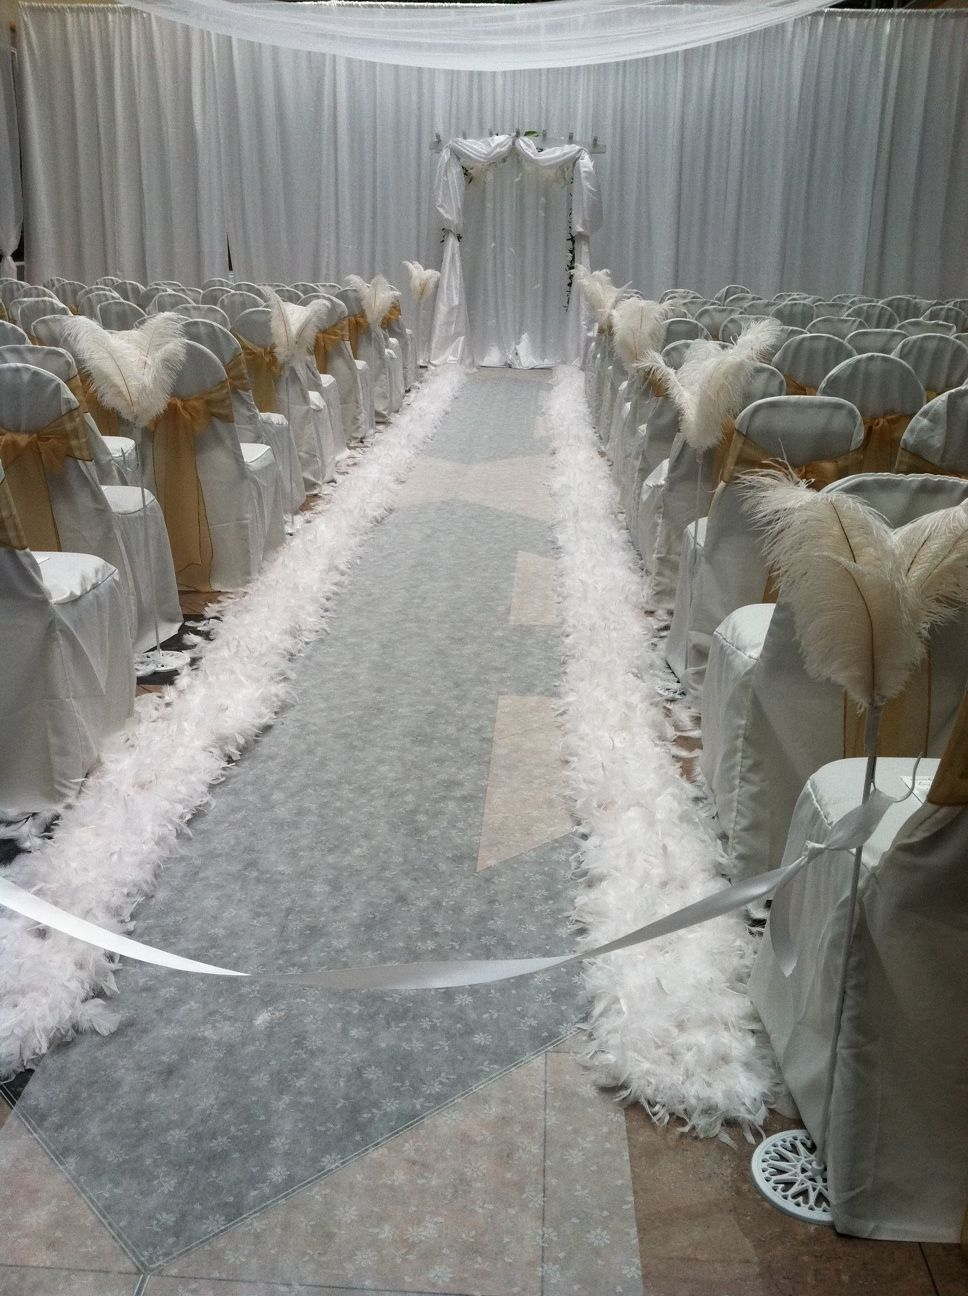 Heavenly All White Ceremony Feather Aisle